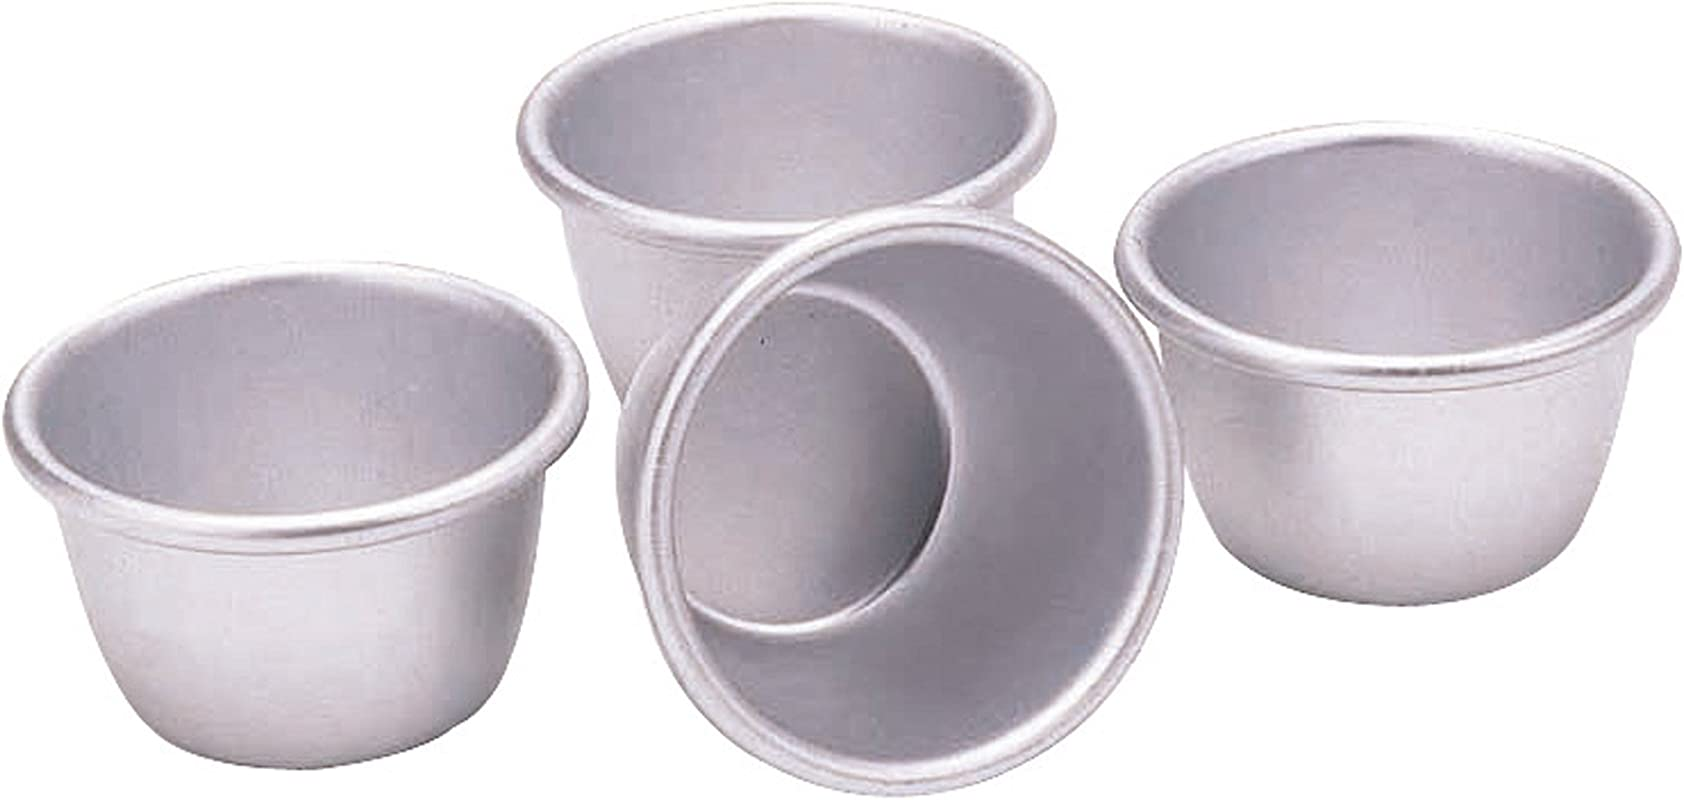 7 5cm Set Of 4 Anodised Mini Pudding Moulds